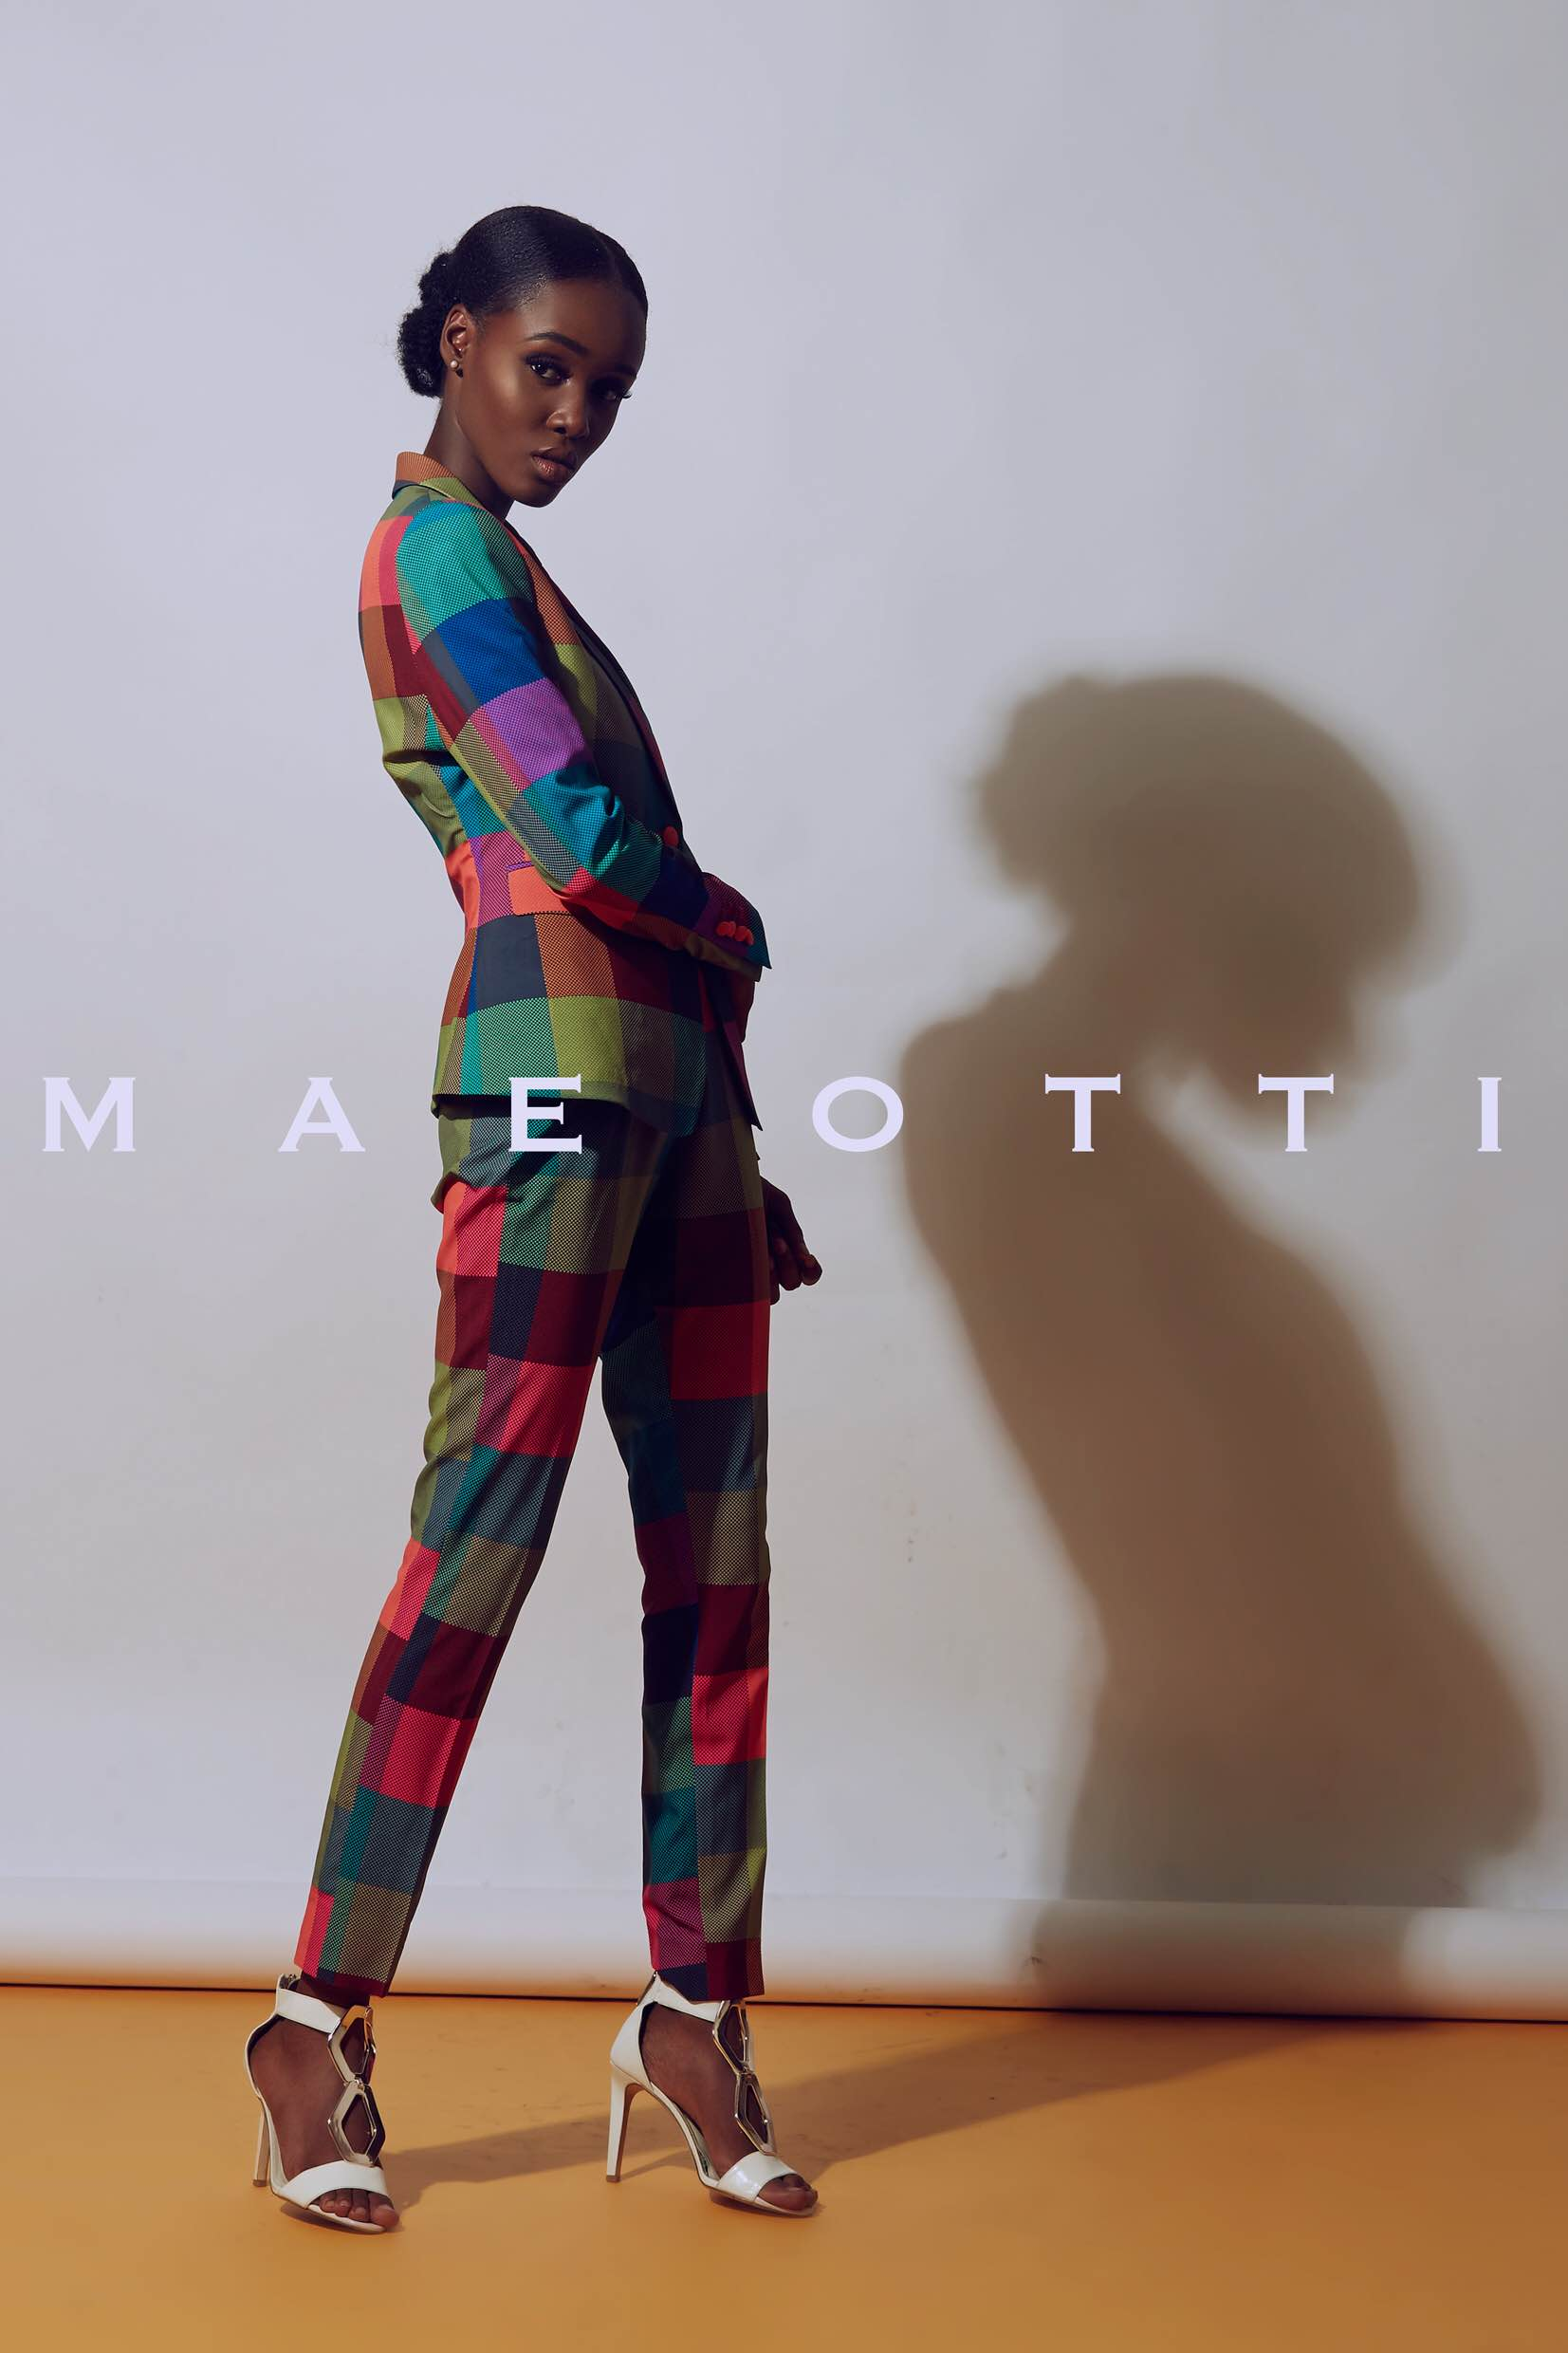 MAE OTTI Debut Lookbook IMG_6154